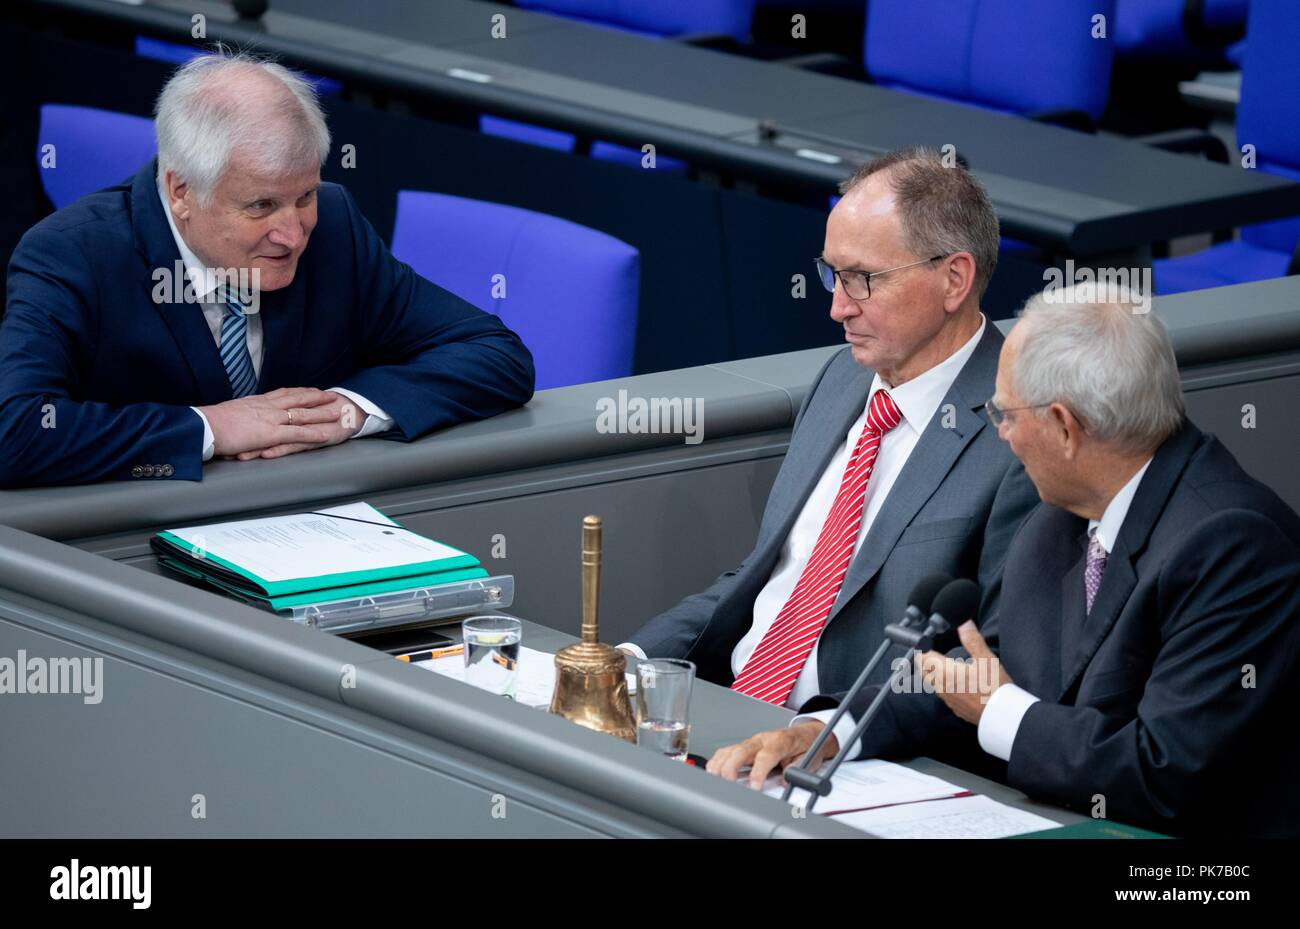 Berlin, Germany. 11 September 2018, Berlin: Horst Seehofer (CSU, l), Federal Minister of the Interior, for Building and Home, speaks to Wolfgang Schäuble (CDU, r), President of the Bundestag, at the plenary session in the German Bundestag. The main topic of the 47th session of the 19th legislative period is the Federal Government's draft budget 2019 and the federal budget 2018 to 2022. Photo: Bernd von Jutrczenka/dpa Credit: dpa picture alliance/Alamy Live News - Stock Image